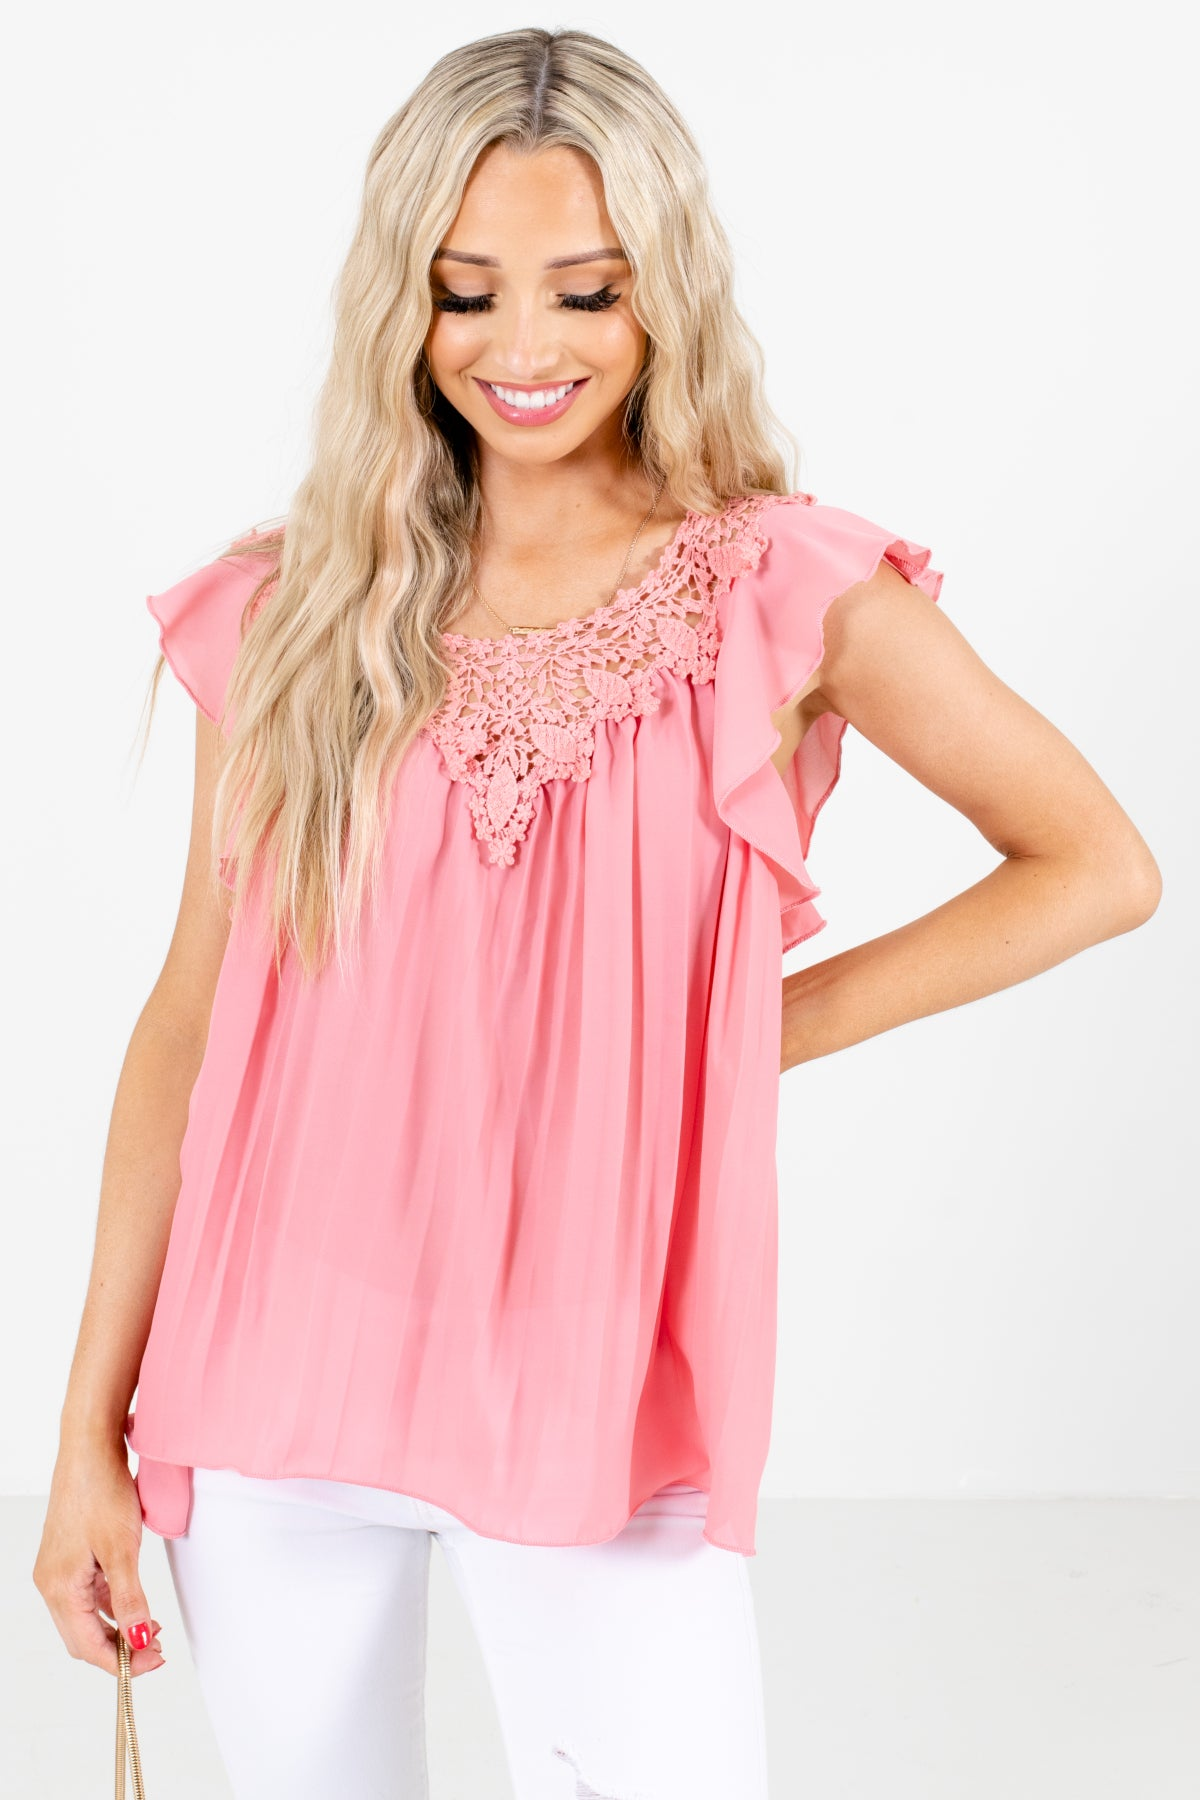 Pink Lightweight Pleated Material Boutique Blouses for Women